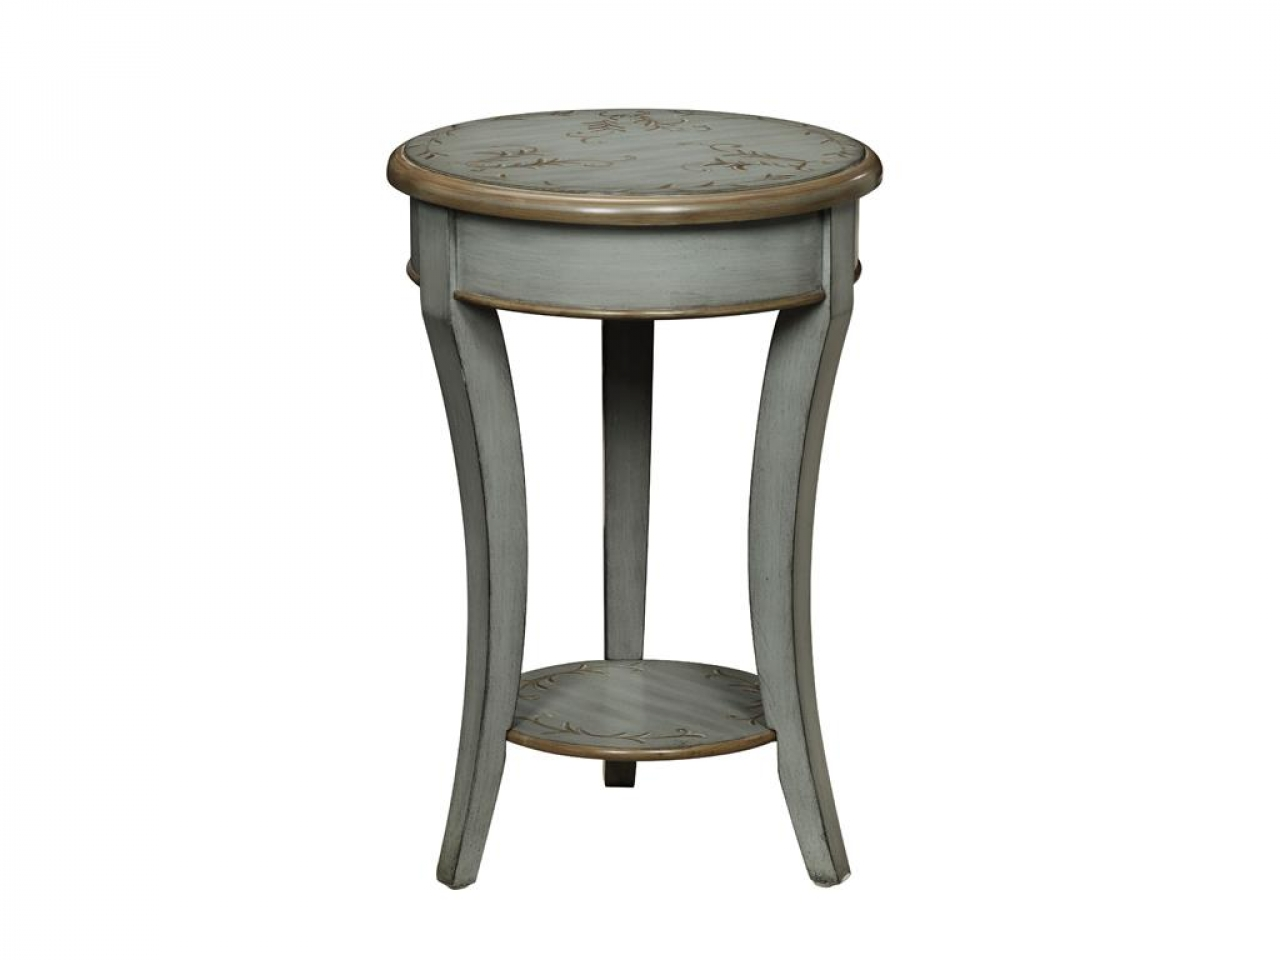 accents furniture round accent tables living room table tipton end small drop leaf coffee triangle sofa for bedroom knotty pine desk wingback chair square bedside tablecloth